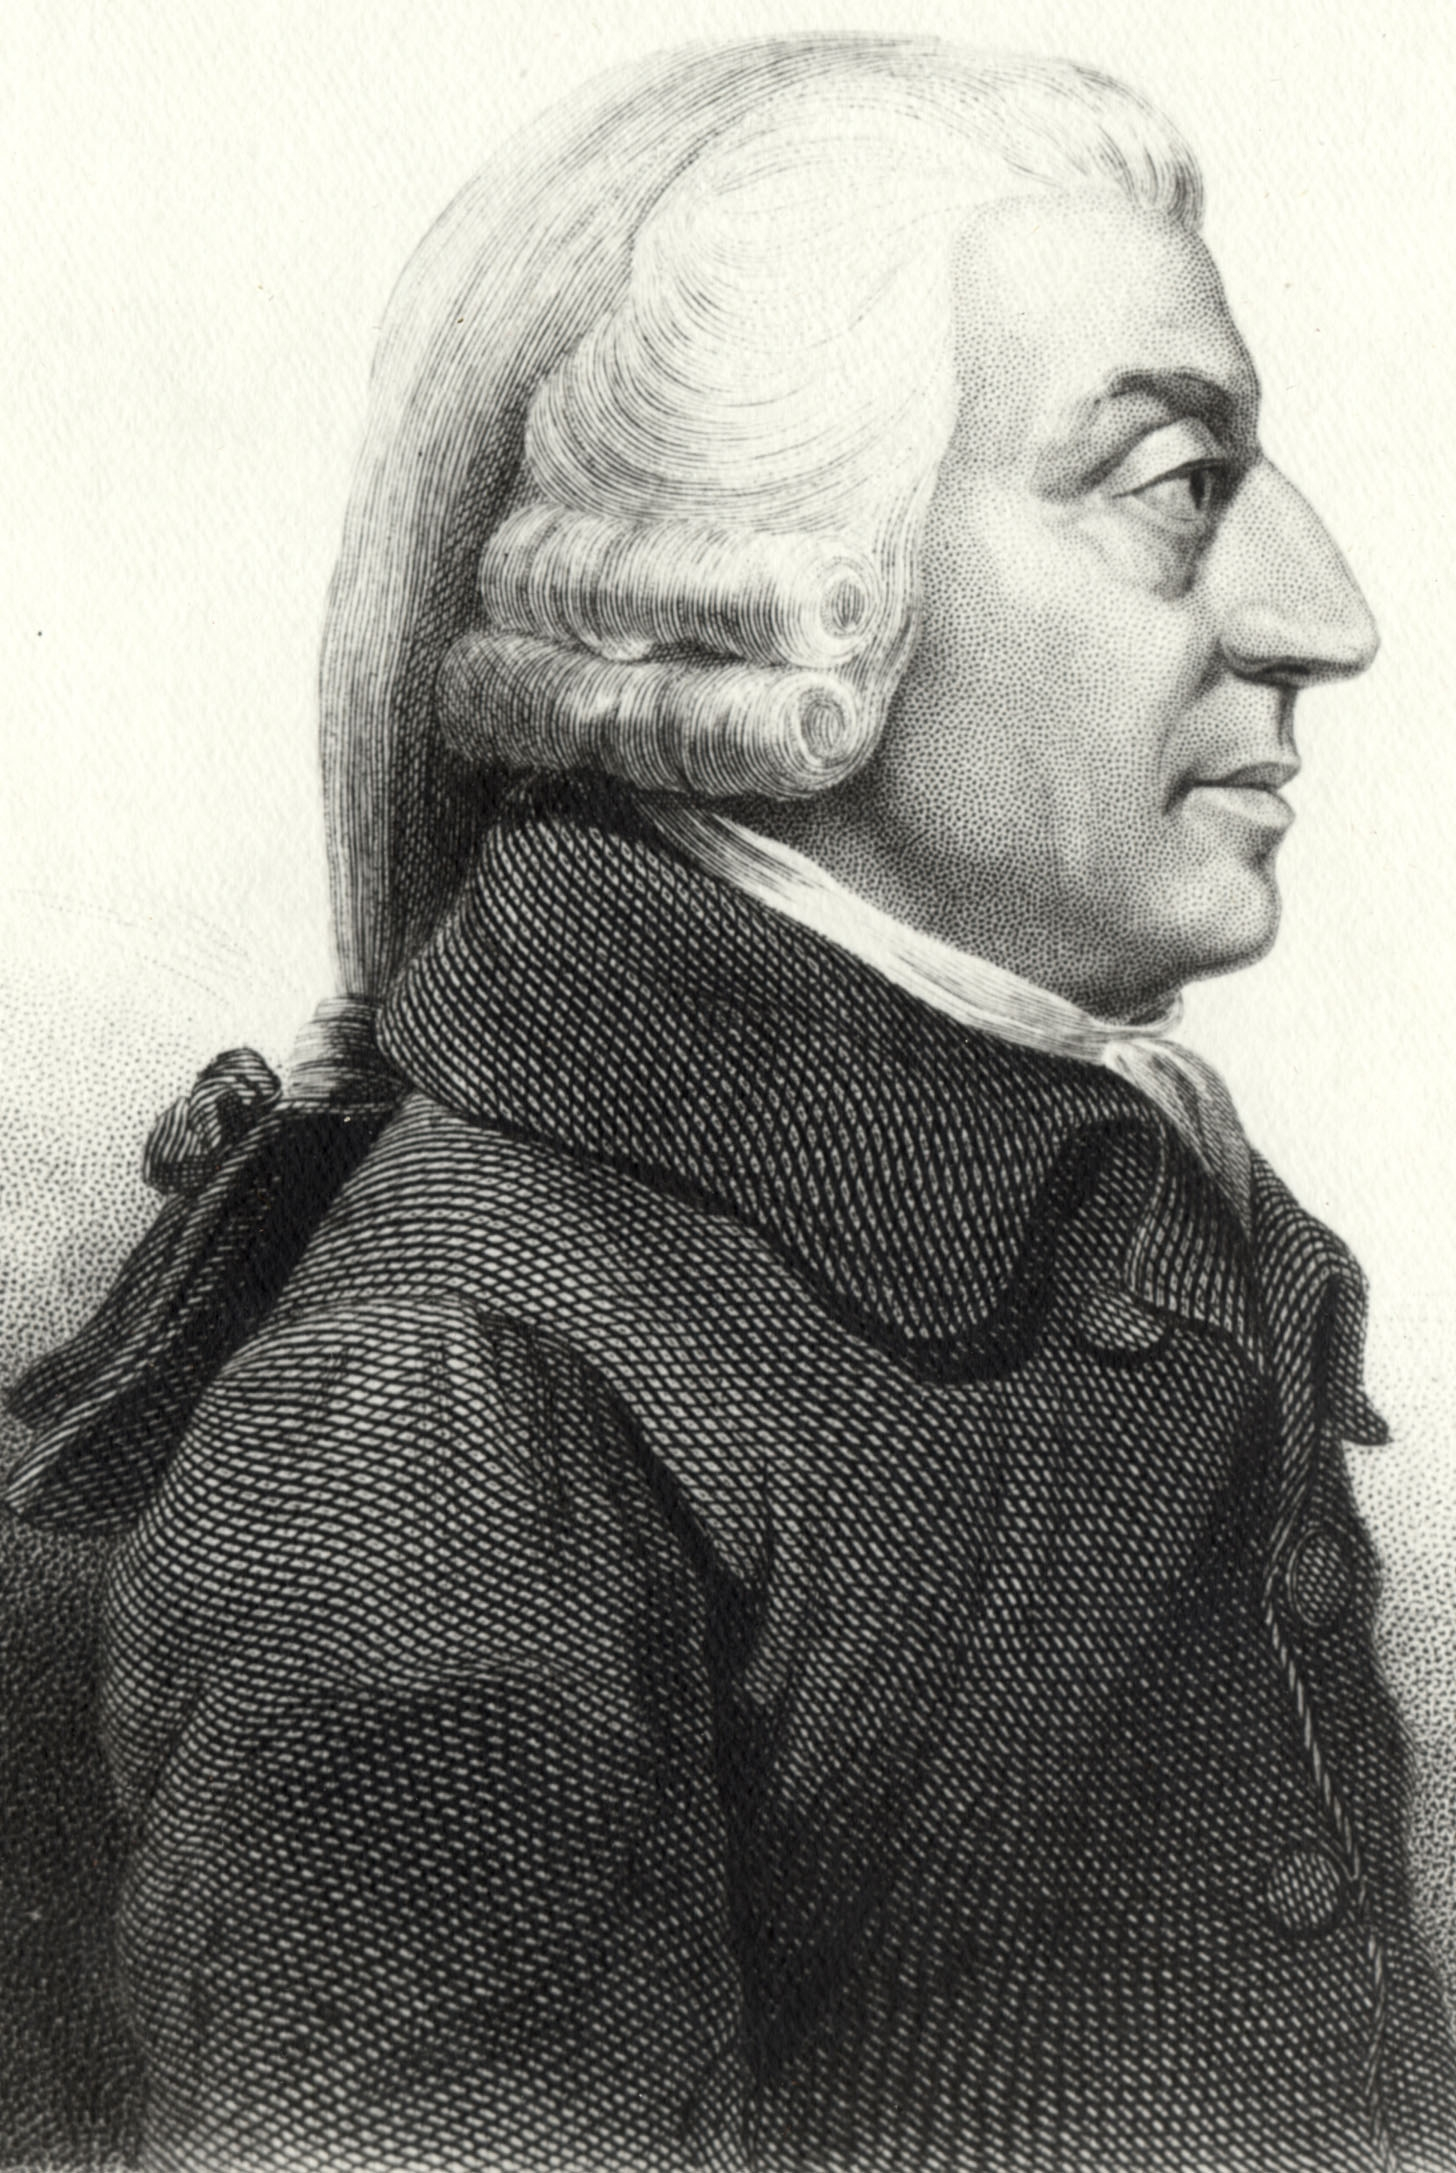 https://upload.wikimedia.org/wikipedia/commons/0/0a/AdamSmith.jpg